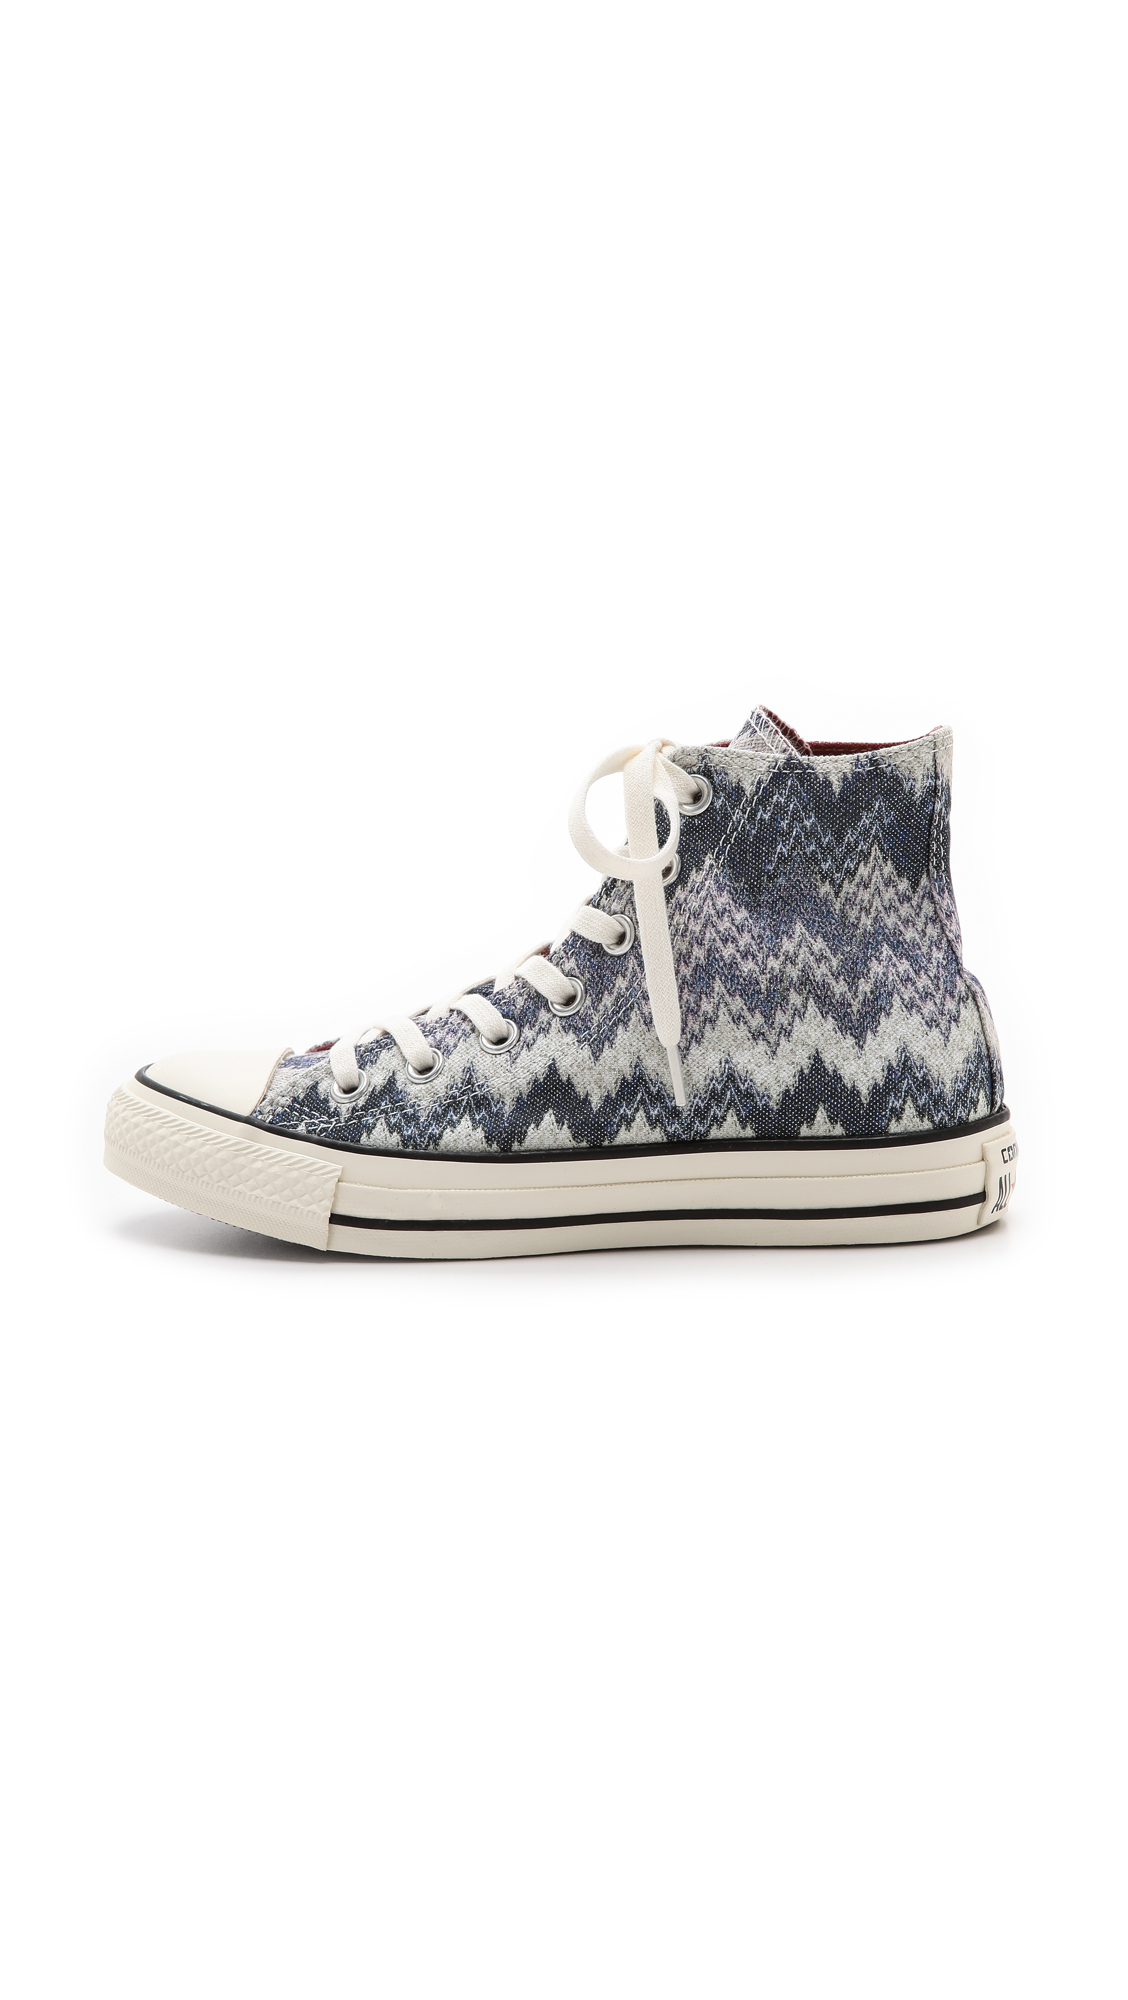 6b4f035c7995 Gallery. Previously sold at  Shopbop · Women s Converse Chuck Taylor ...